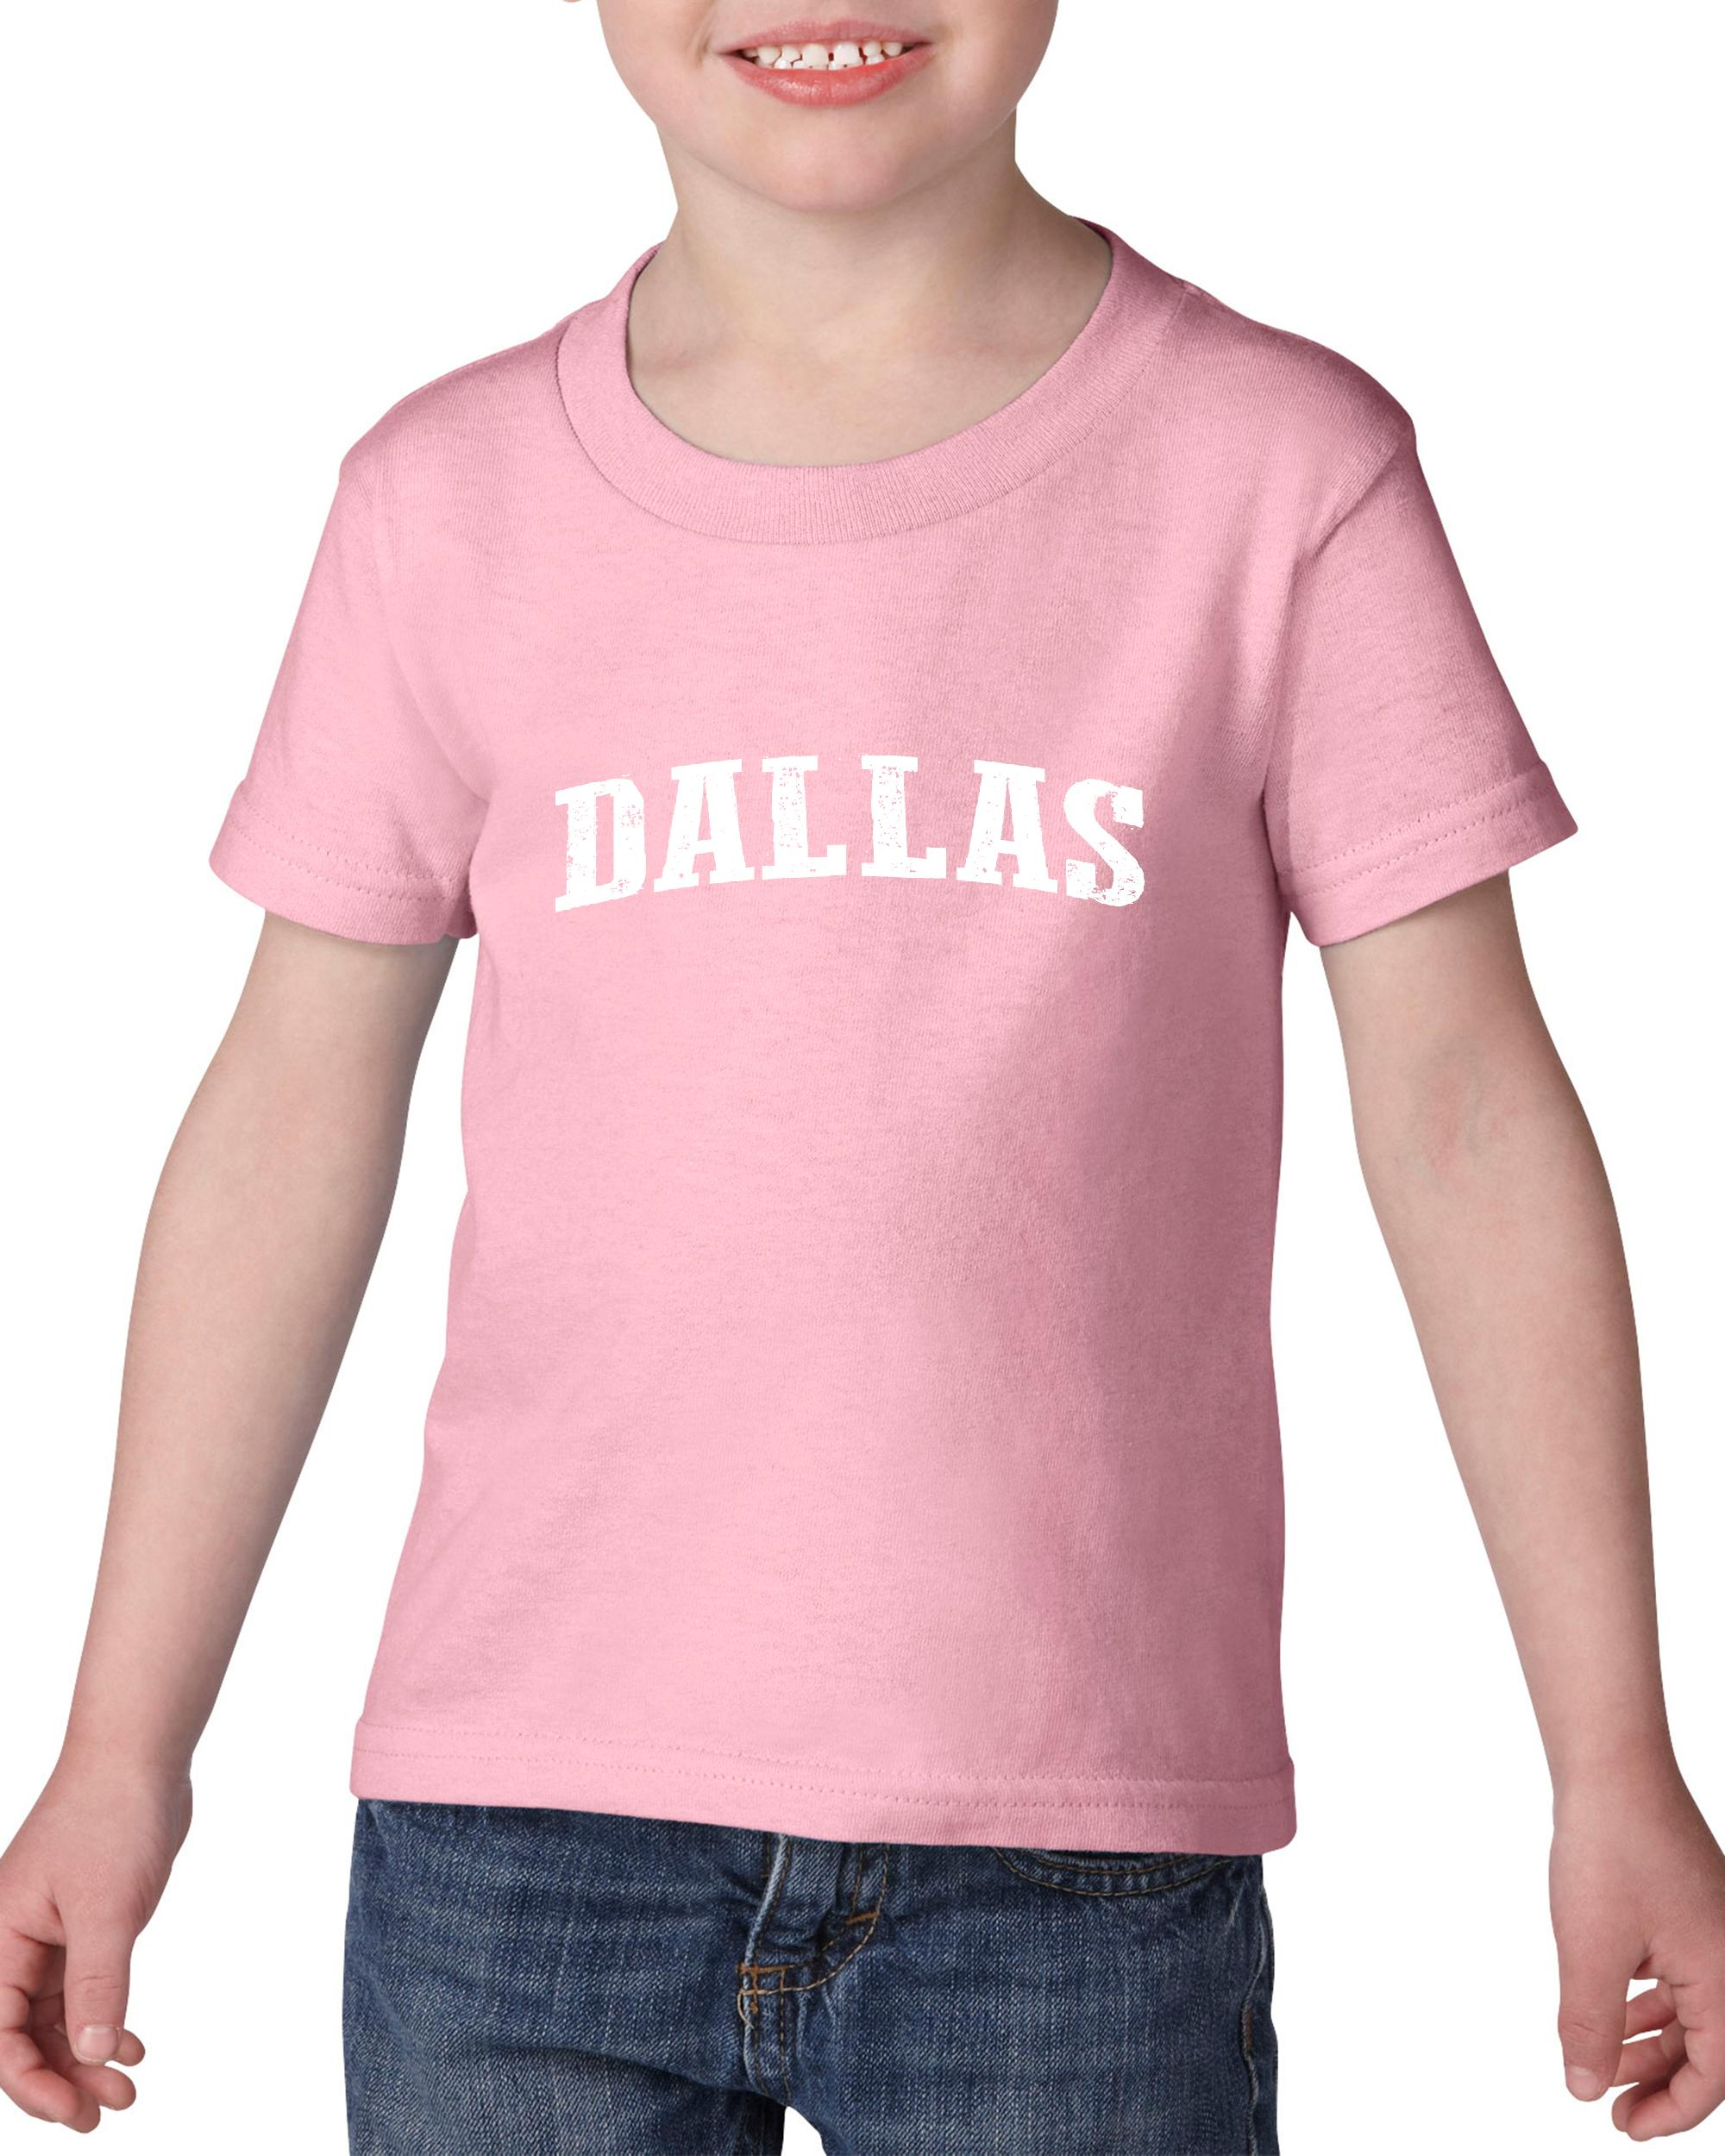 Artix Dallas TX Texas Flag Houston Map Longhorns Bobcats Home Texas State University Heavy Cotton Toddler Kids T-Shirt Tee Clothing